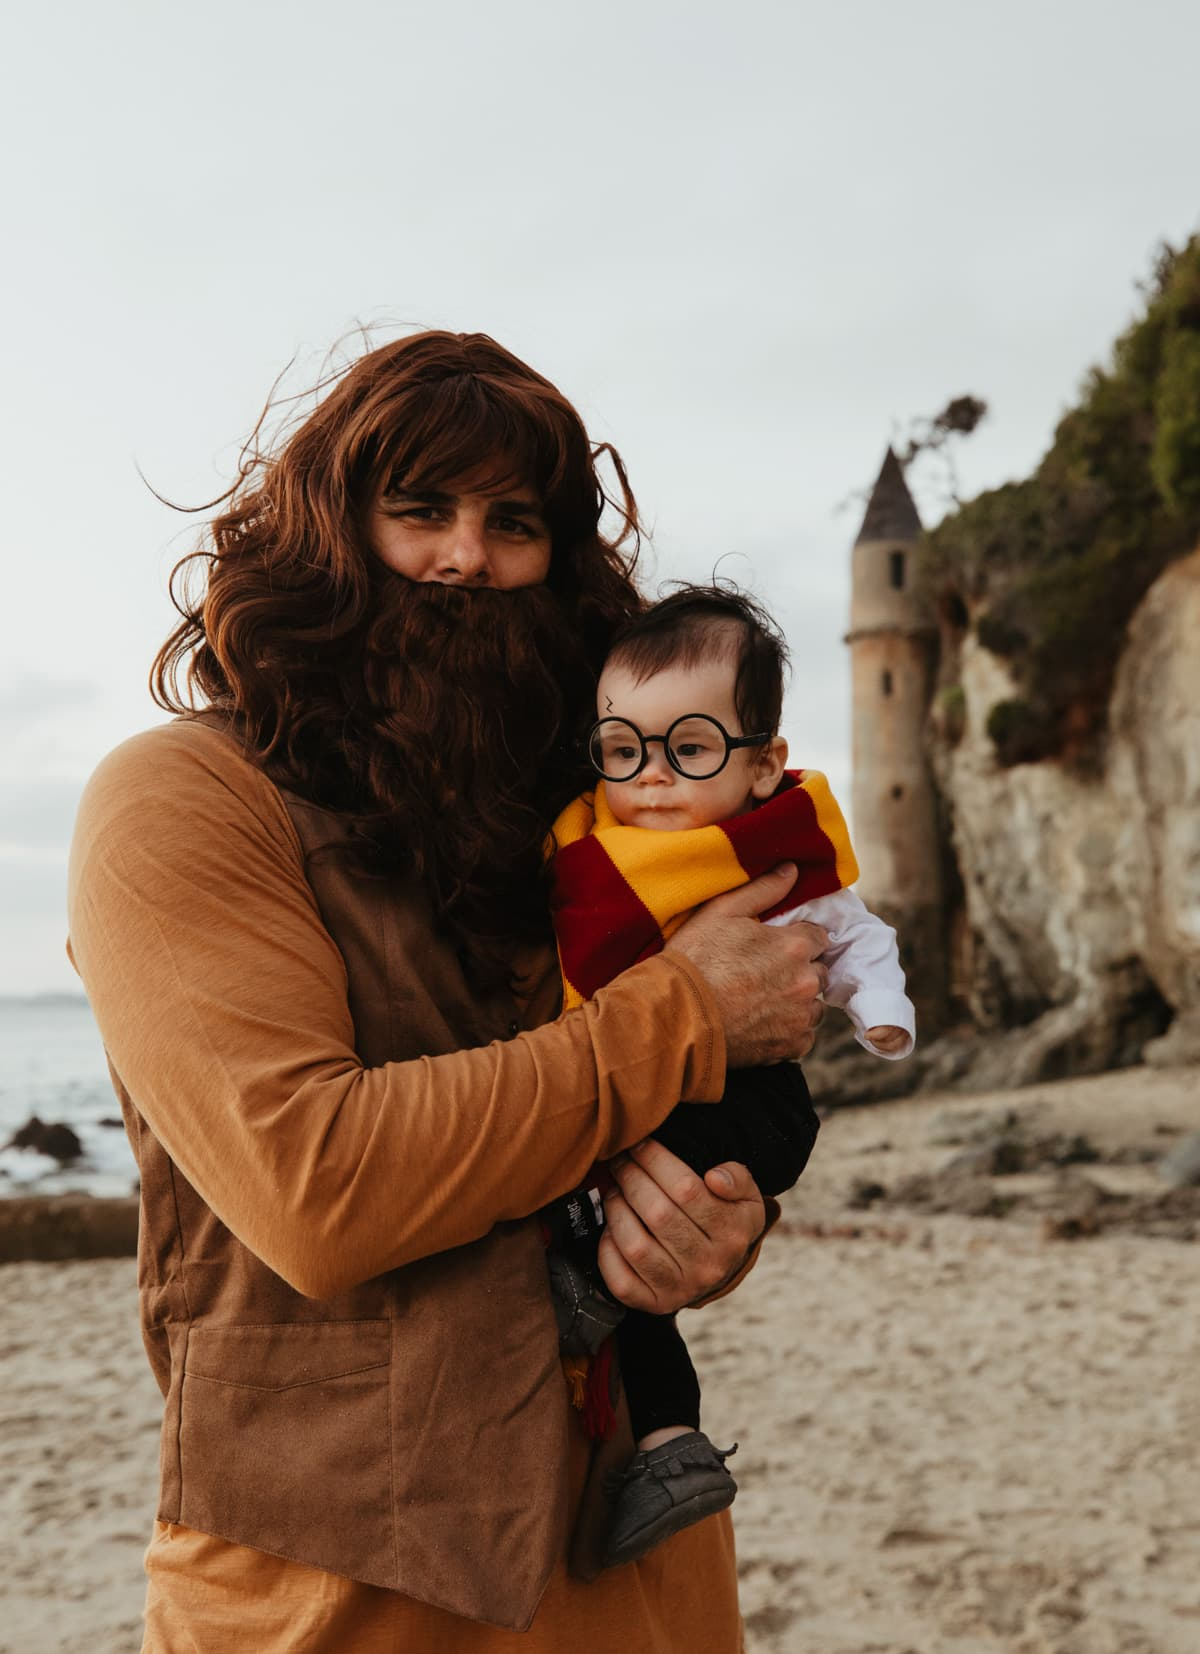 hagrid and baby harry potter costume